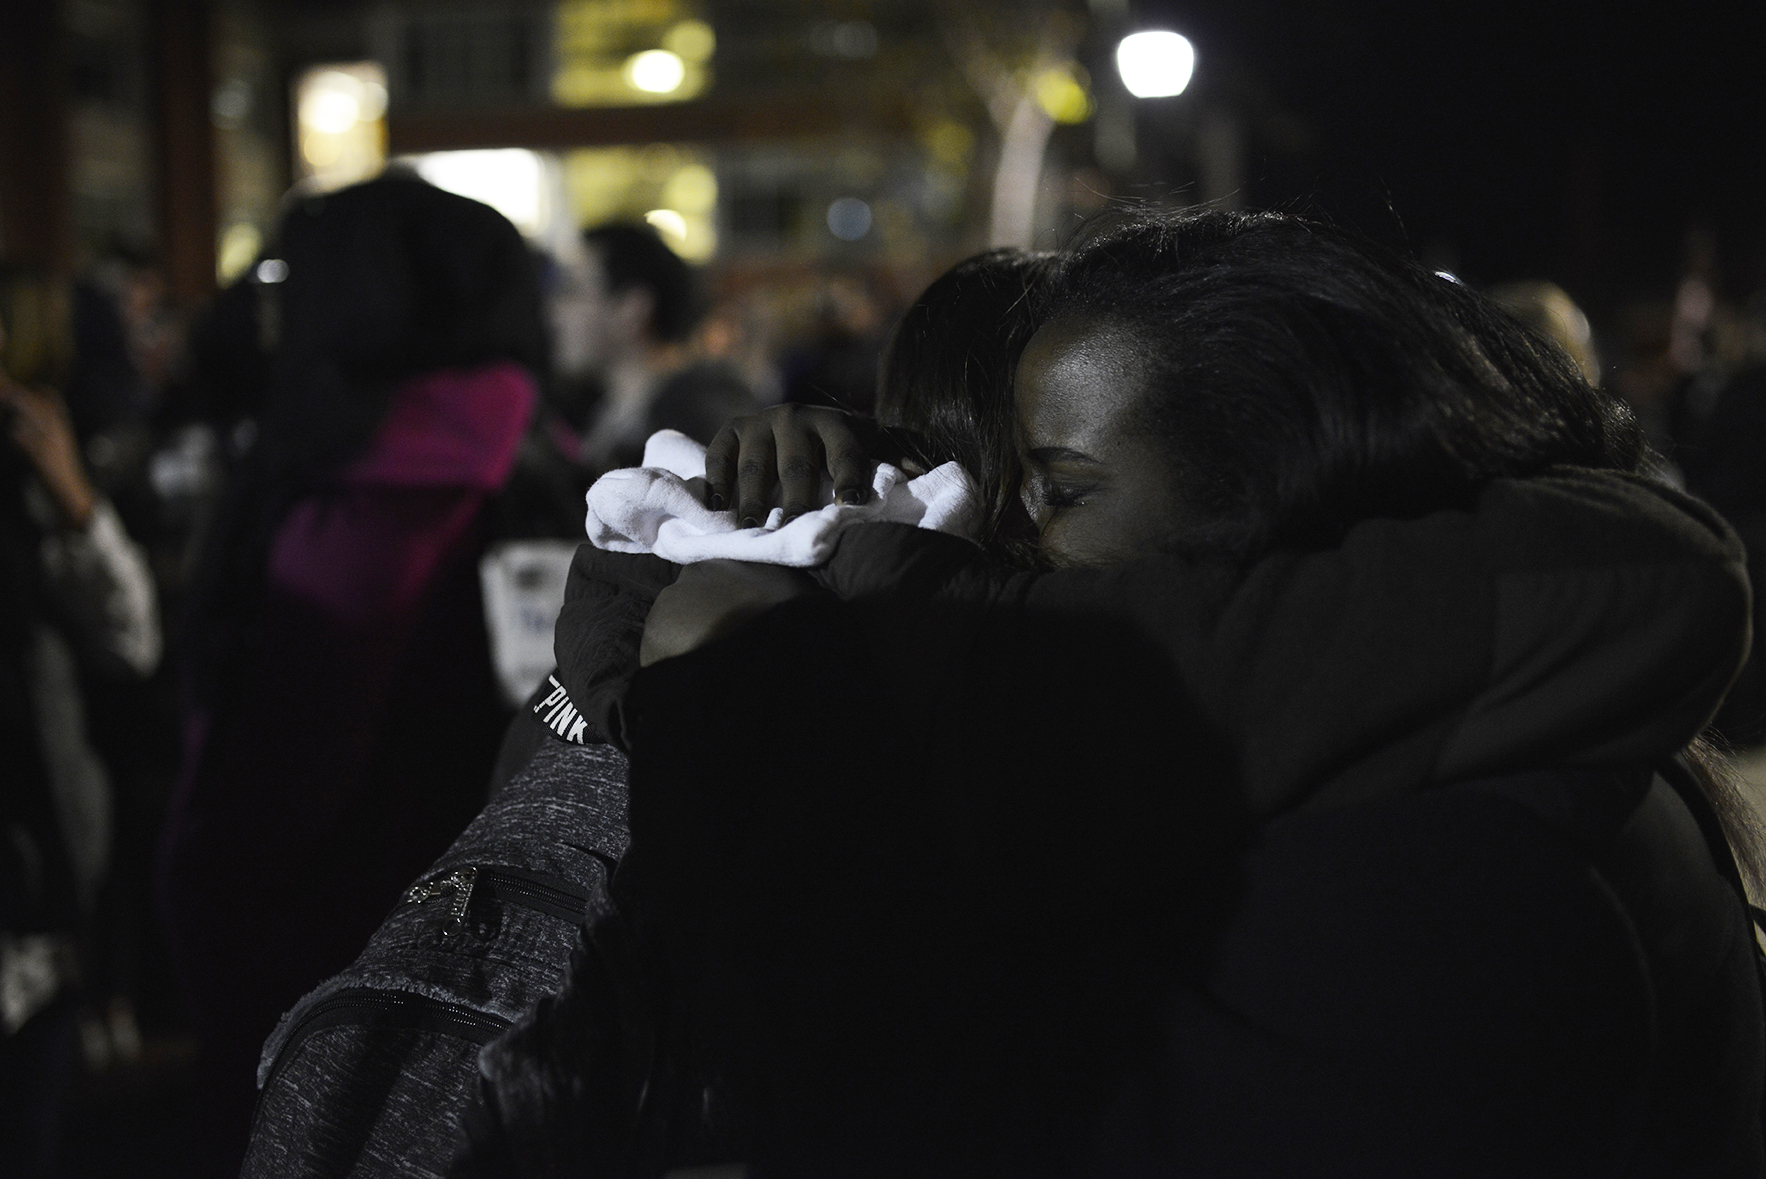 """Students embrace at a vigil held by Asian American Cultural Center (AsAAC) as part of a series named """"Salaam,""""which means """"peace"""" in Arabic. Angela Rola, Director of AsACC, said Salaam got its name for that reason.(Jason Jiang/Daily Campus)"""